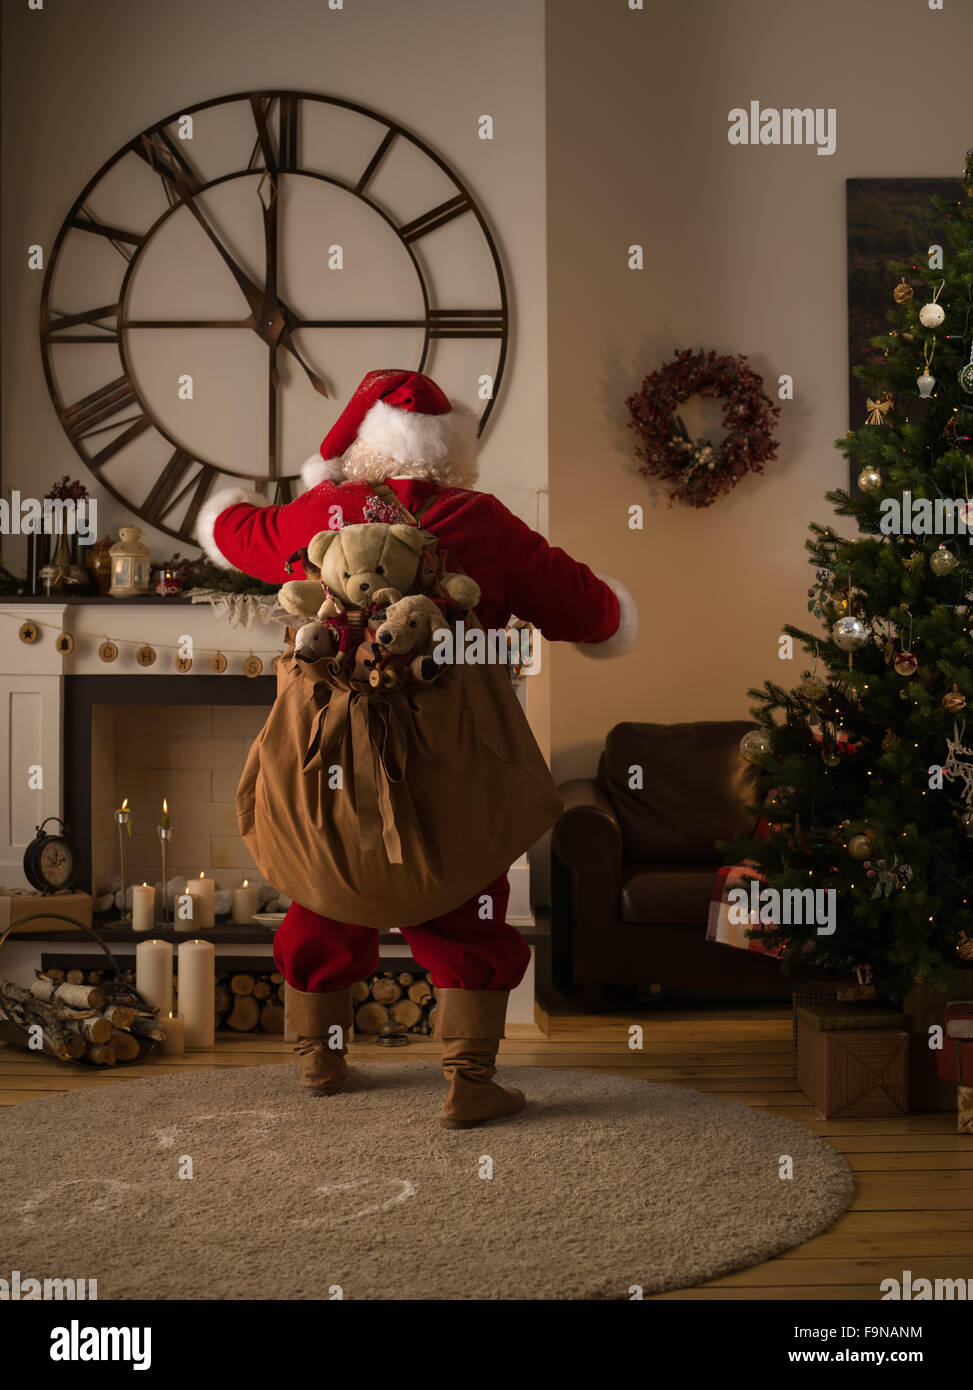 santa claus putting gifts in socks on fireplace at home stock